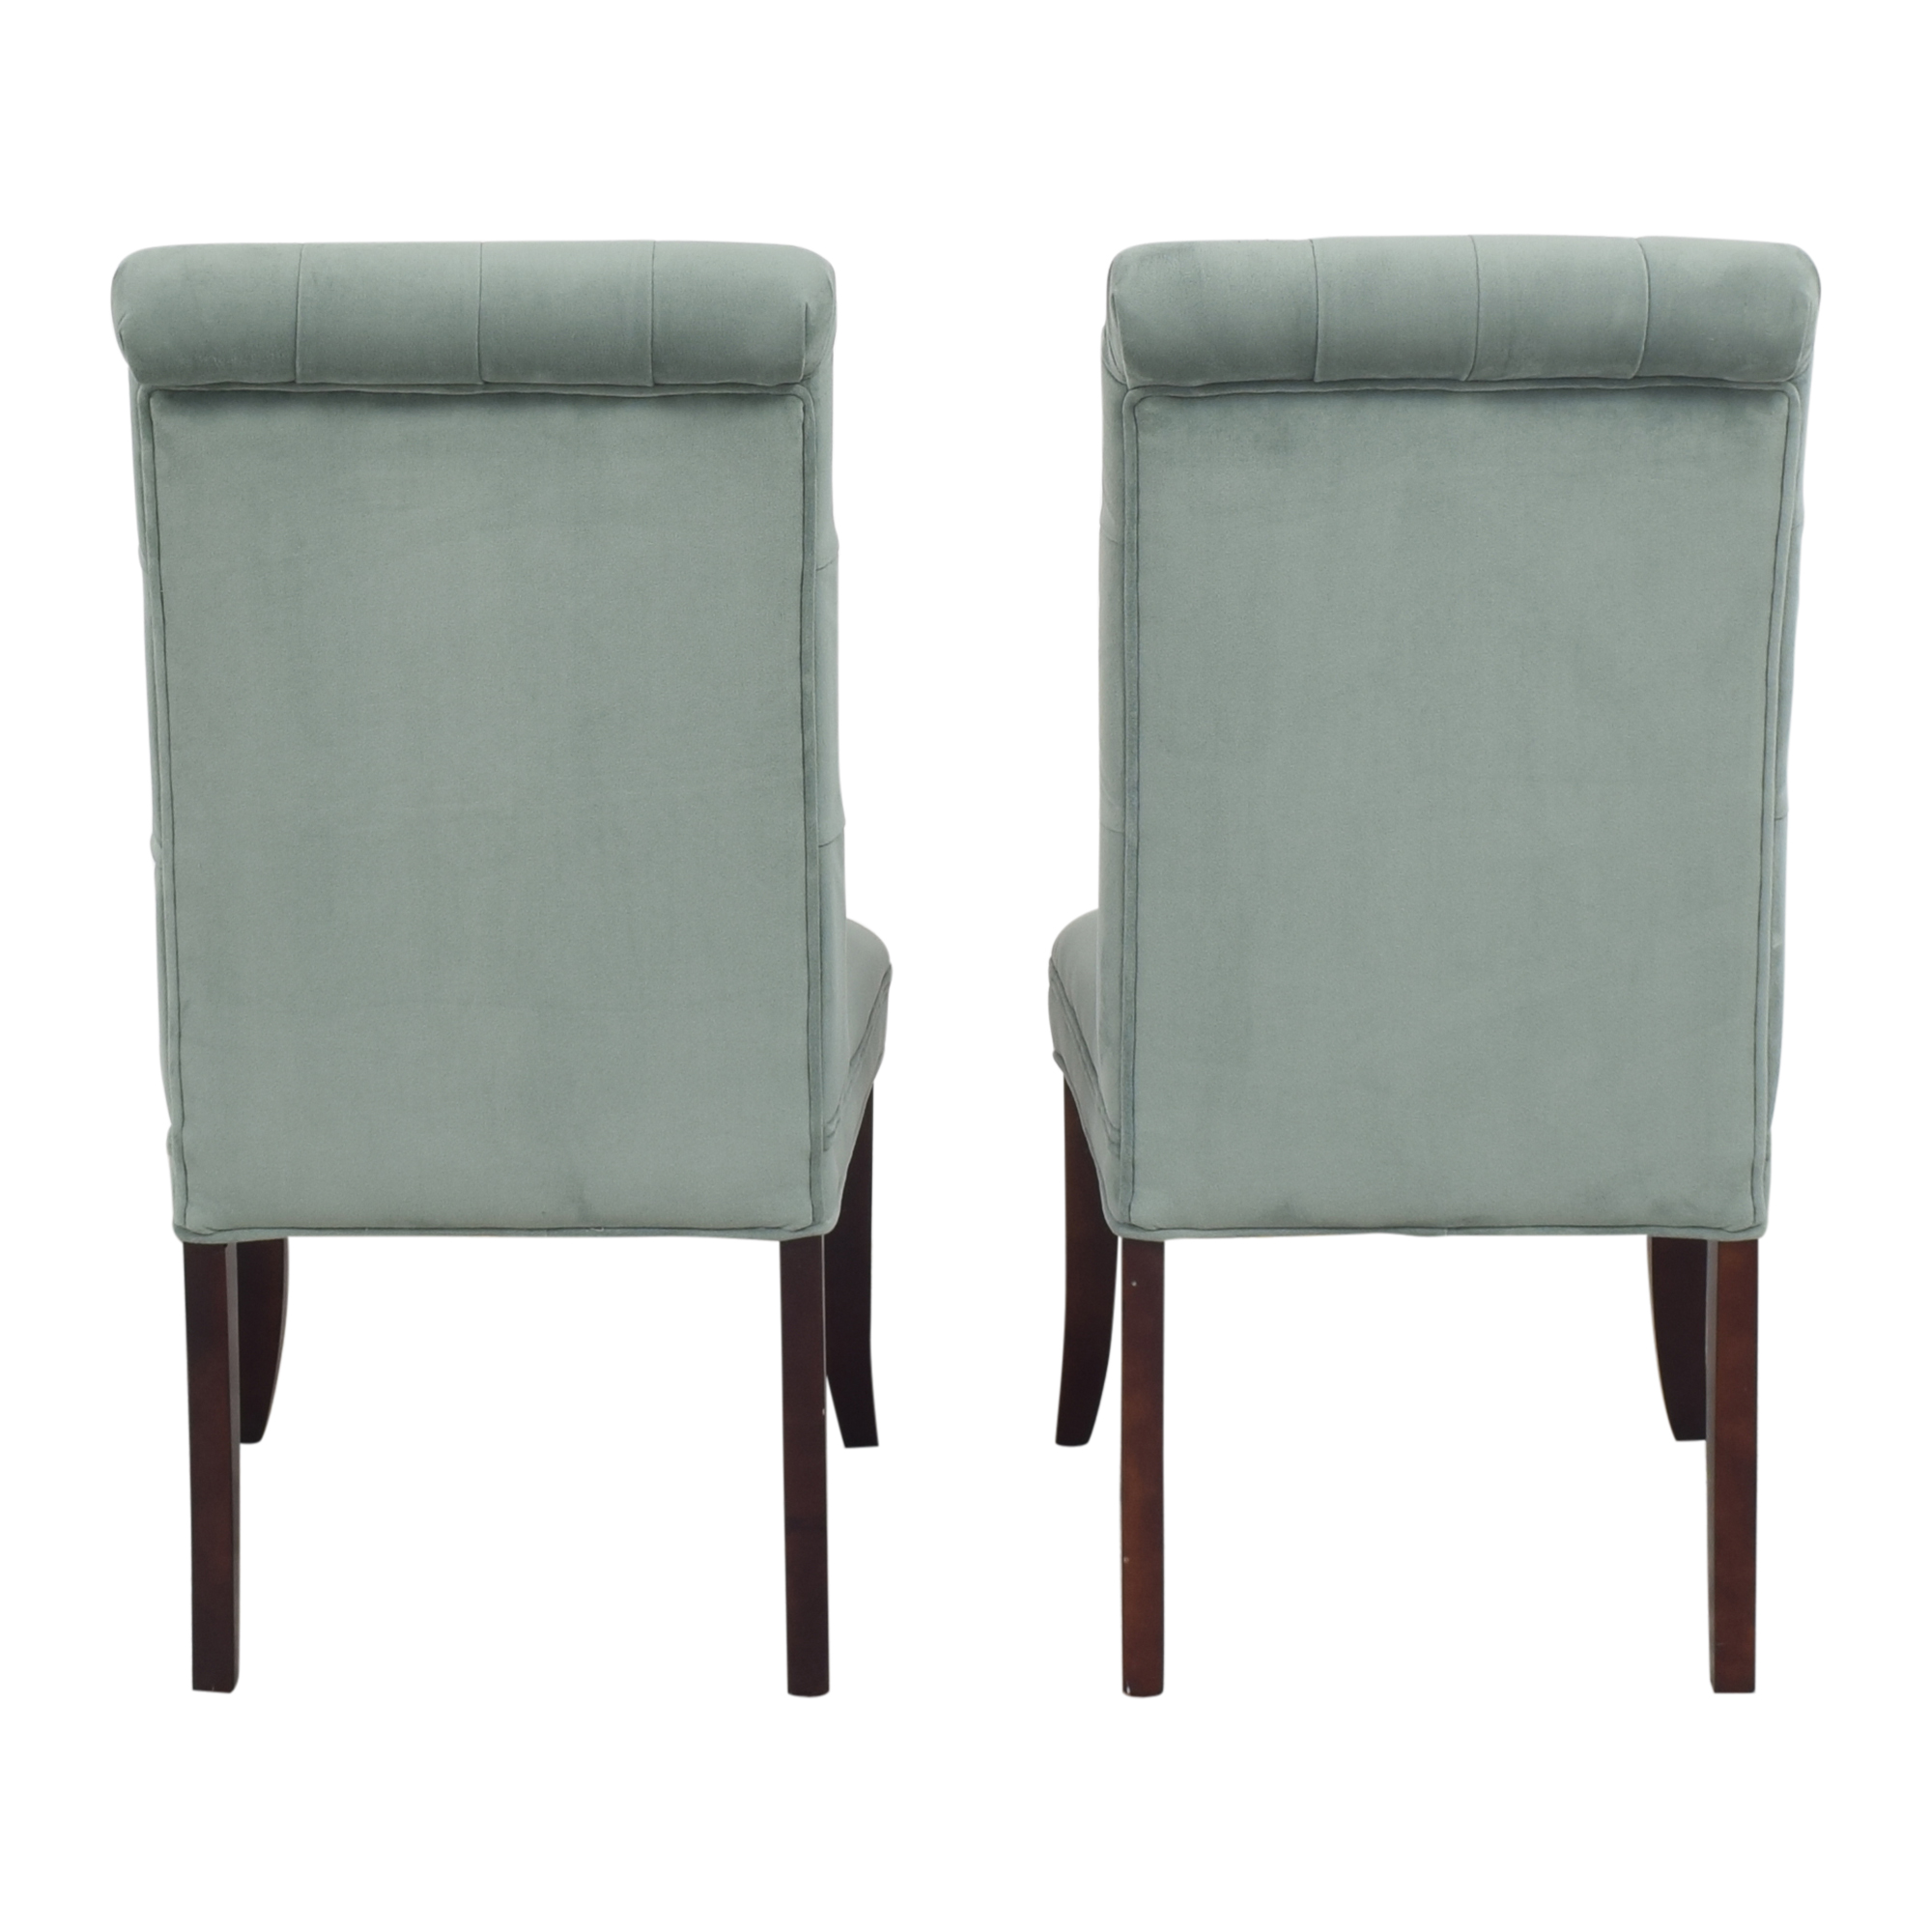 Pier 1 Pier 1 Audrey Dining Chairs dimensions